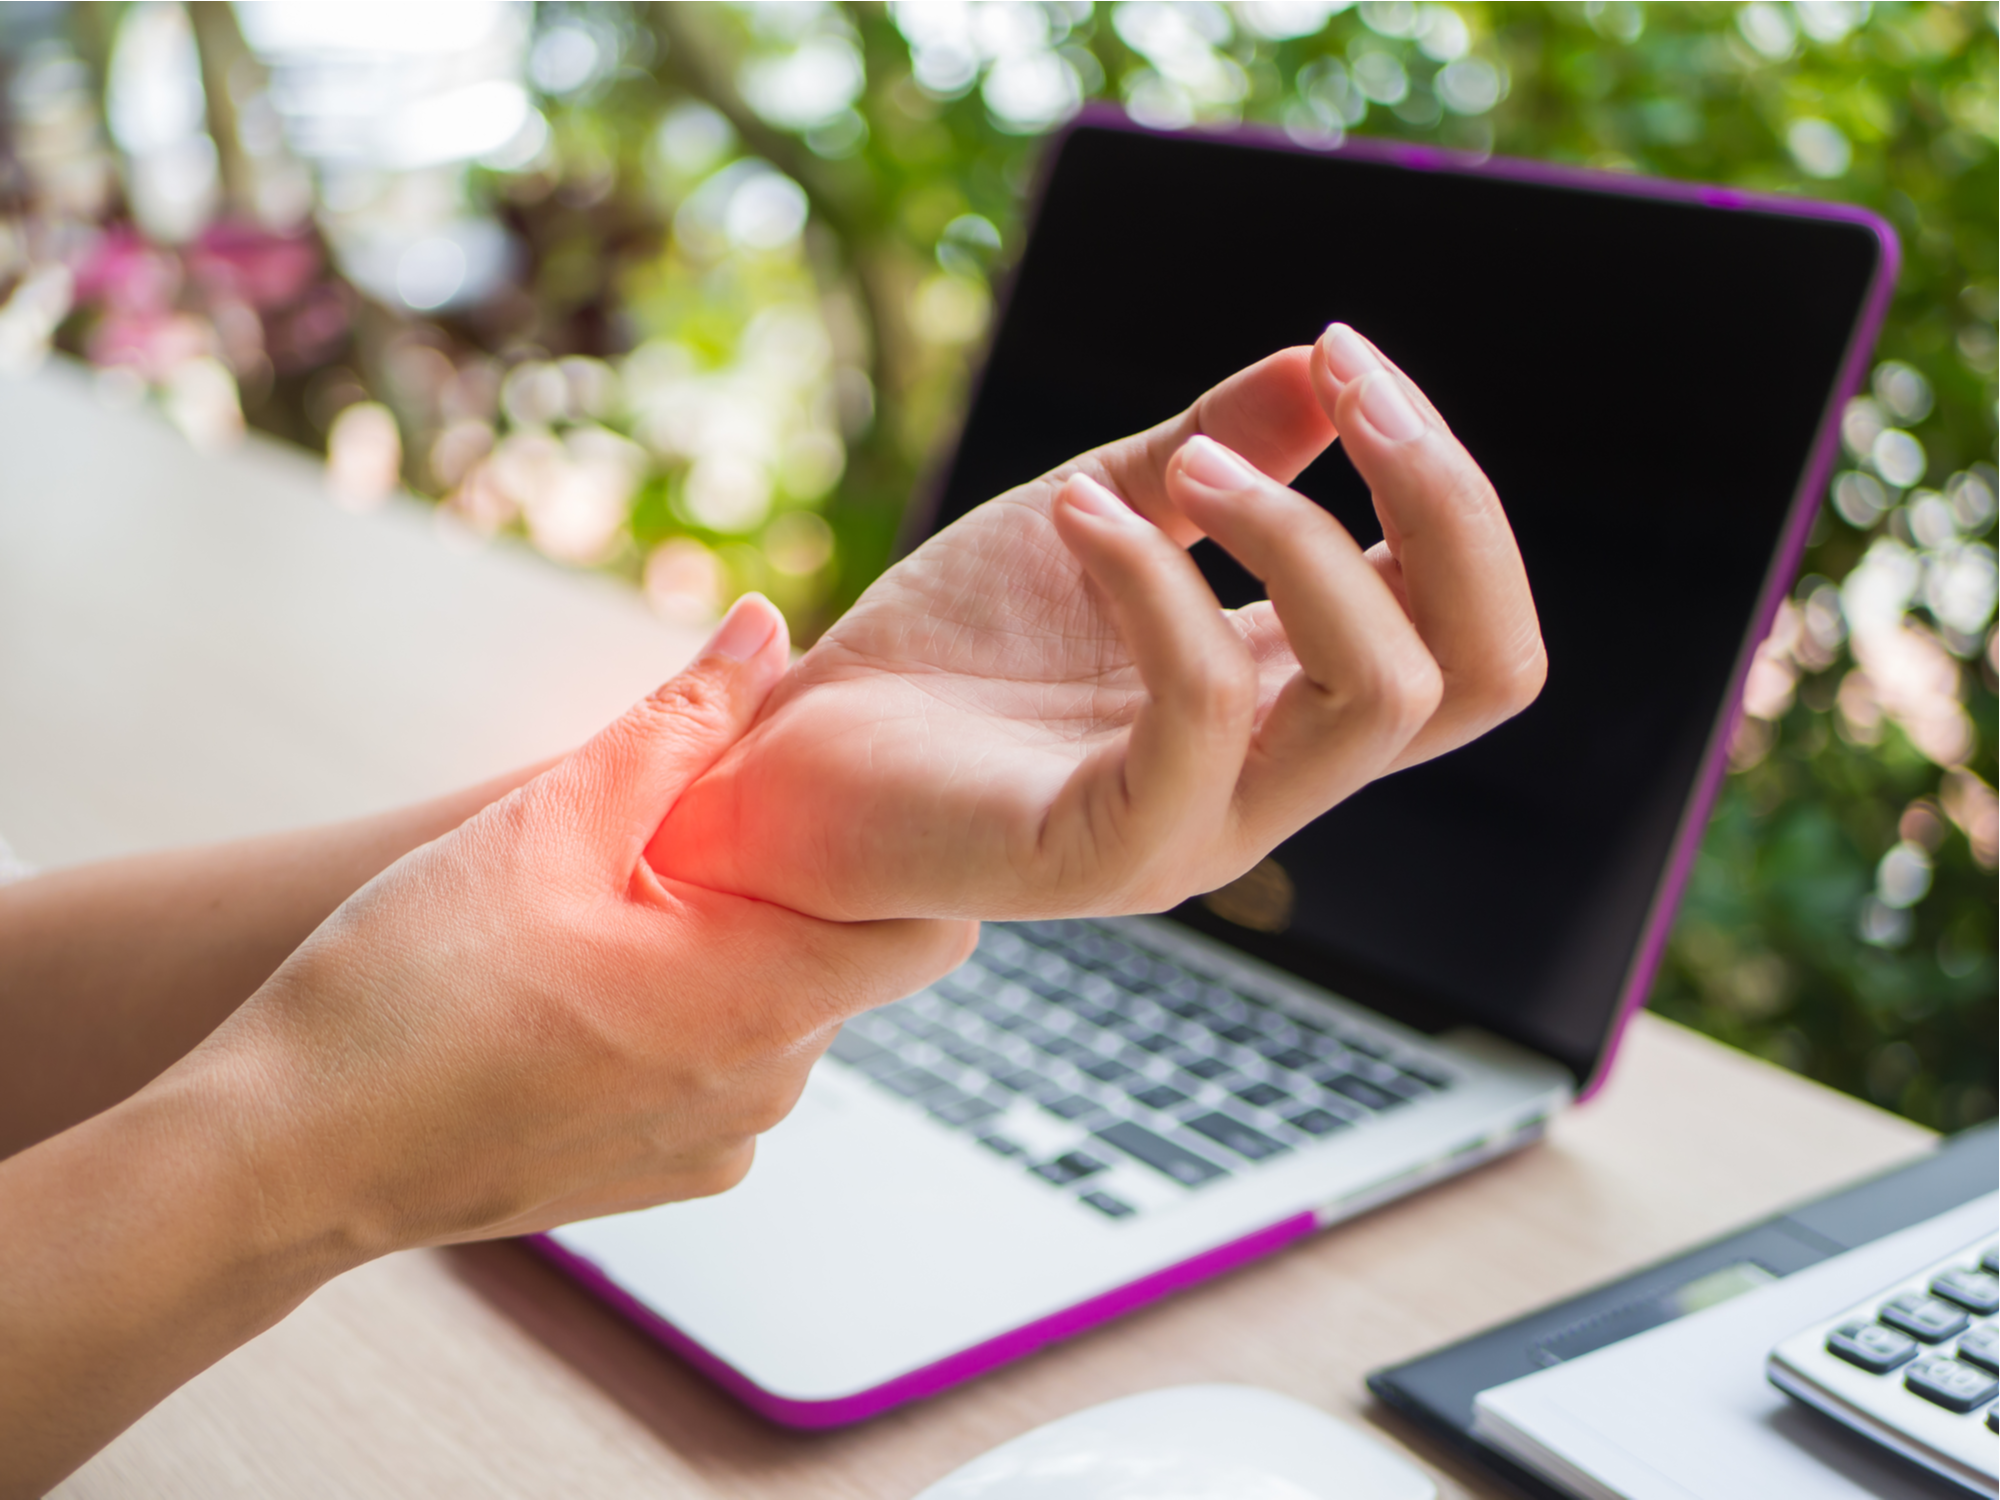 How Do I Know If I Have Carpal Tunnel Syndrome?